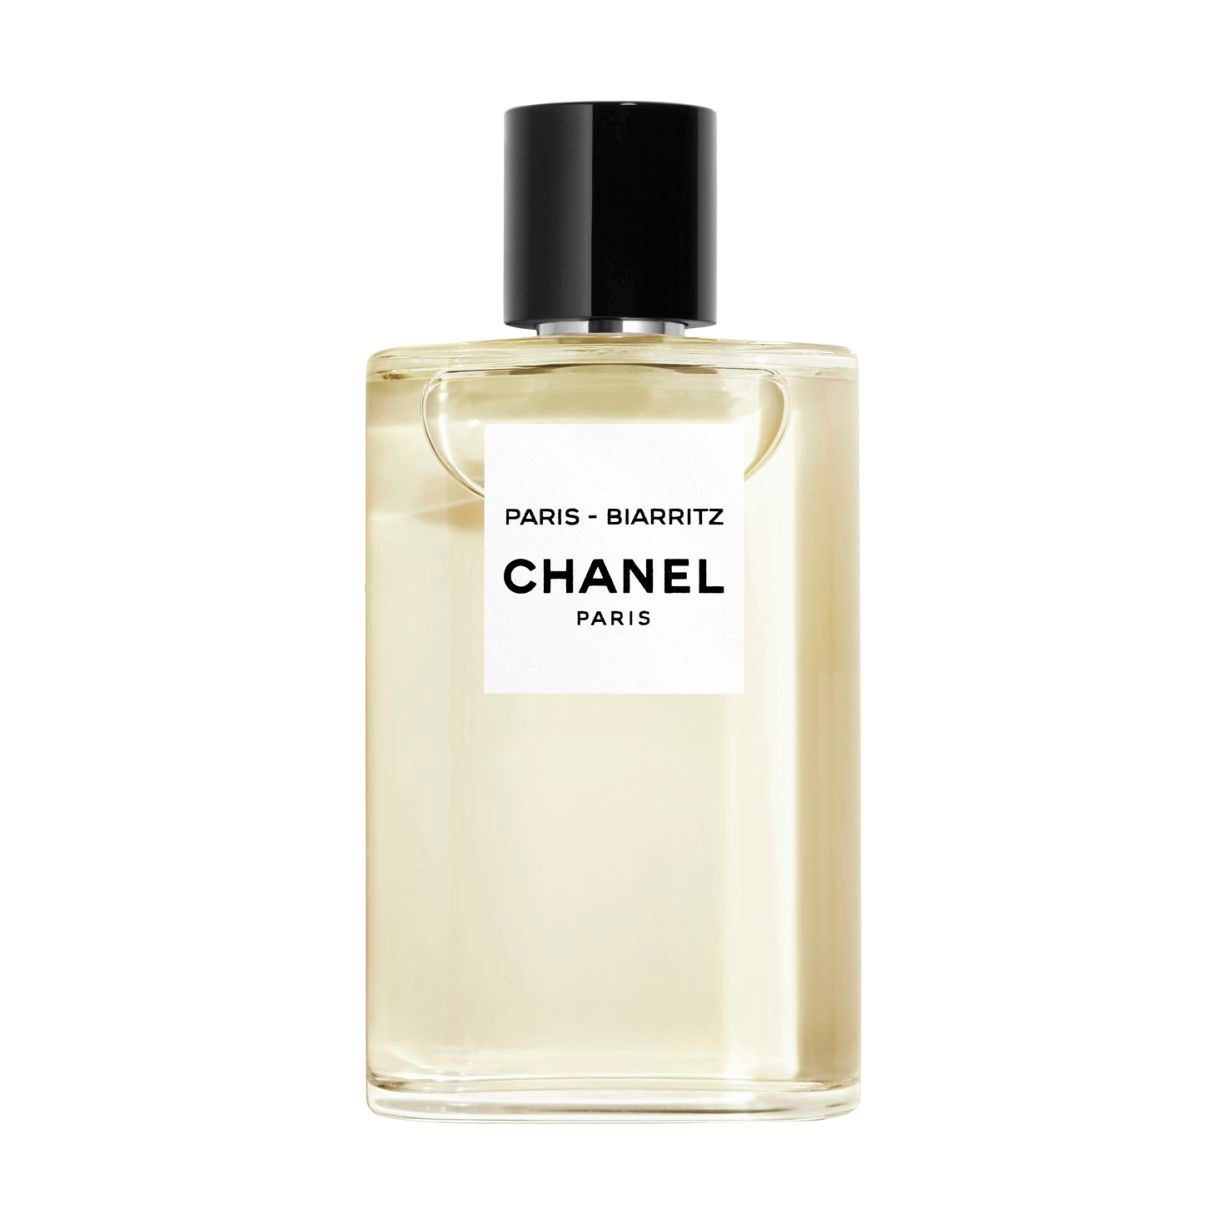 PARIS - BIARRITZ LES EAUX DE CHANEL - EAU DE TOILETTE SPRAY 50ml